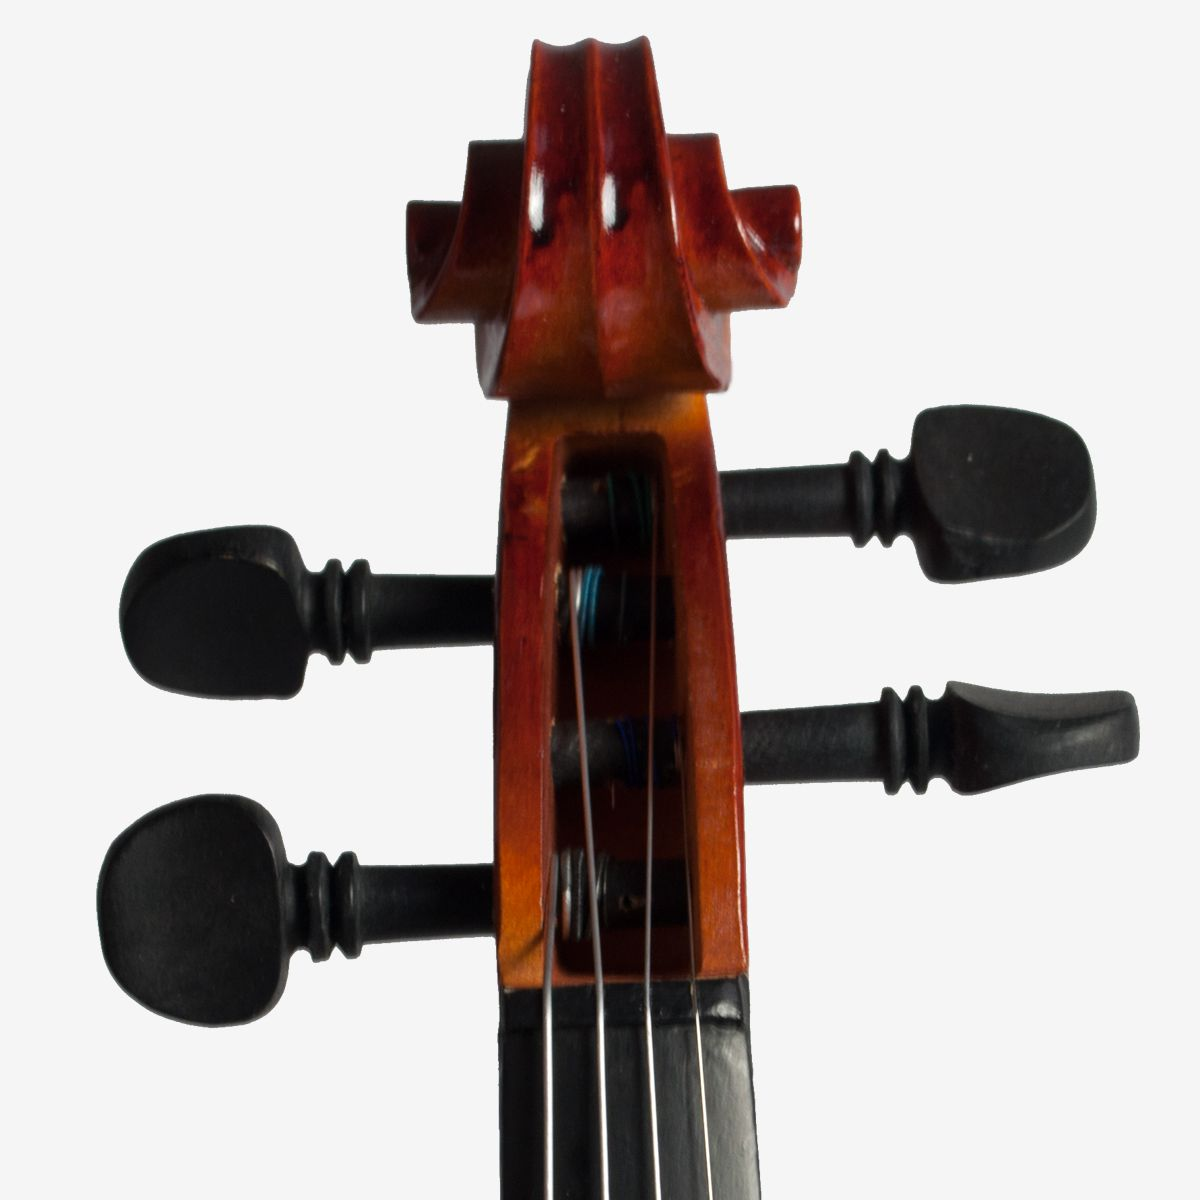 Violino Turbo Elite 3/4 - Acústico